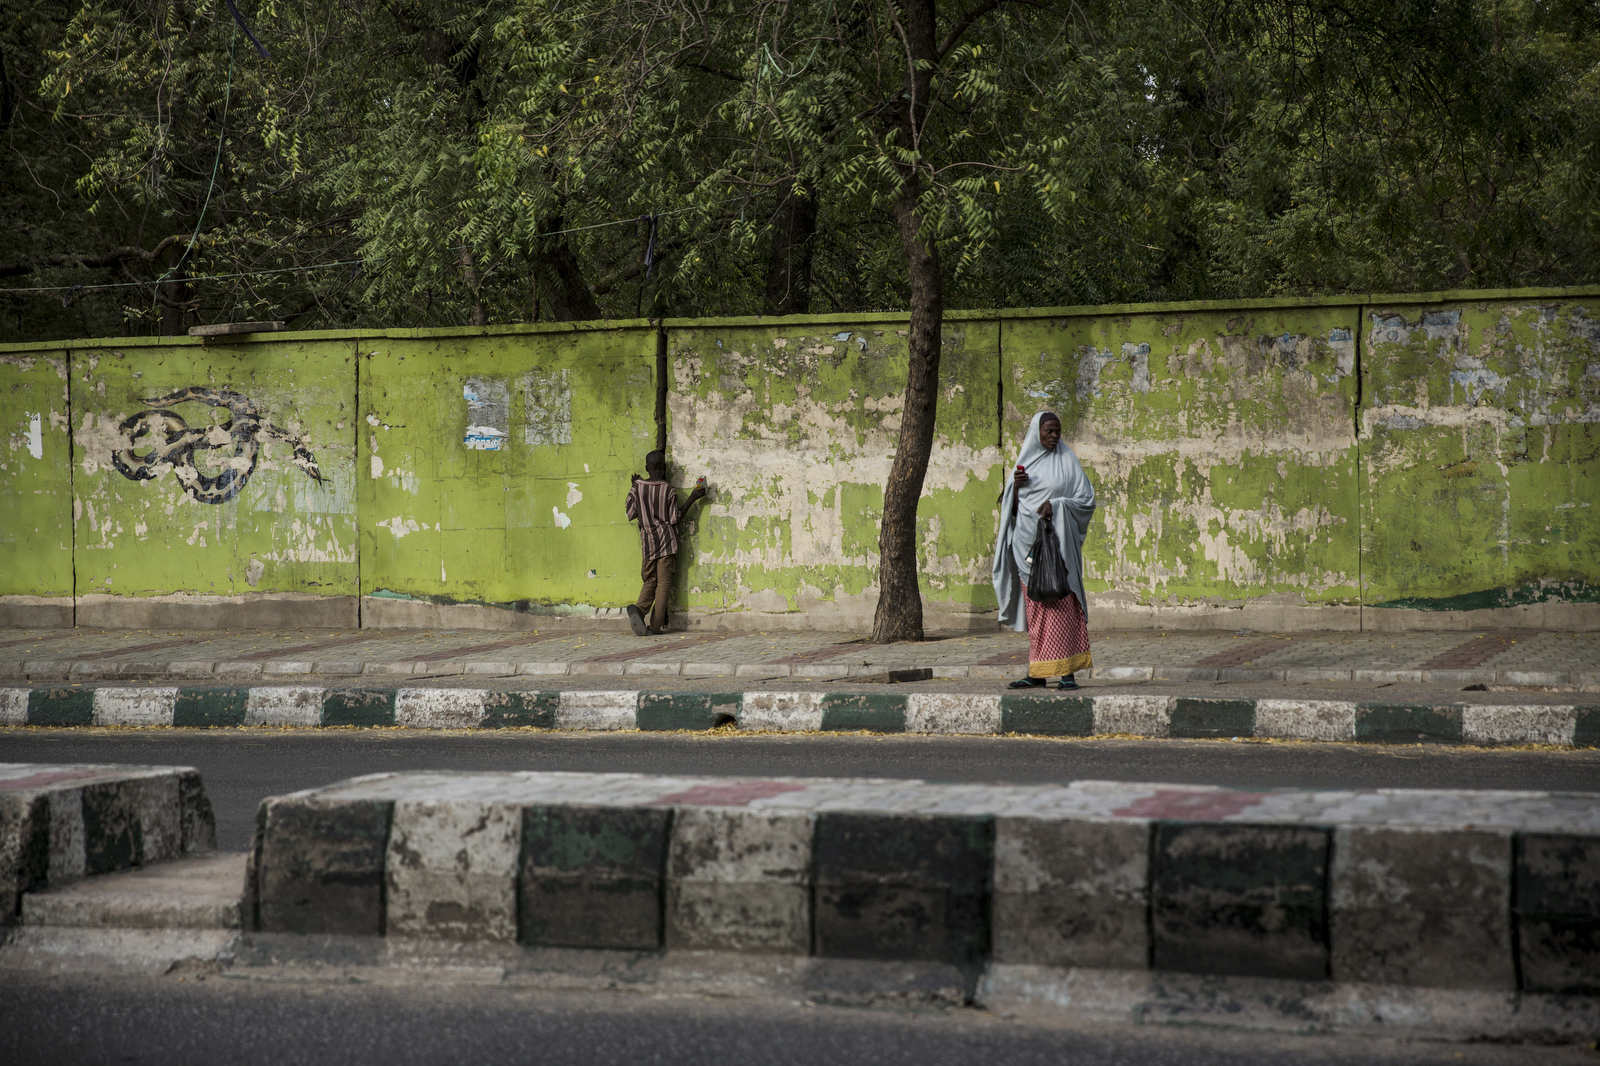 A young boy looks through a crack in the wall outside of the Maiduguri Zoo. Once a tourist attraction, during the height of Boko Haram's power, members would roam the zoo and use it as a place to smoke marijana and do other things considered haram, or morally wrong.